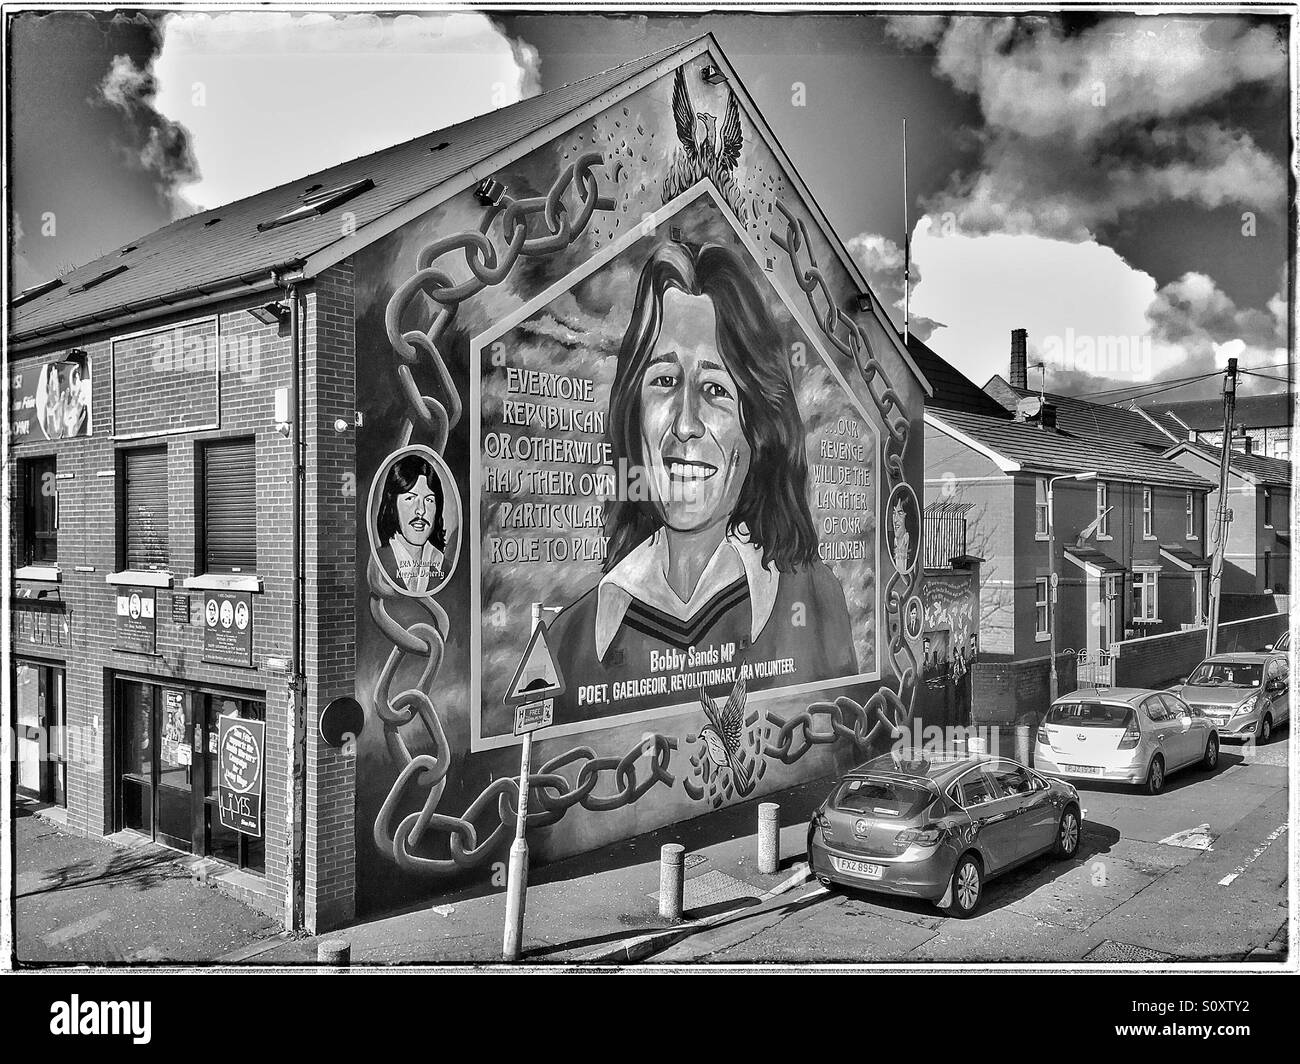 The Bobby Sands Memorial Mural, Painted on the Gable Wall of the Sinn Fein Headquarters Building in the Falls Road - Stock Image